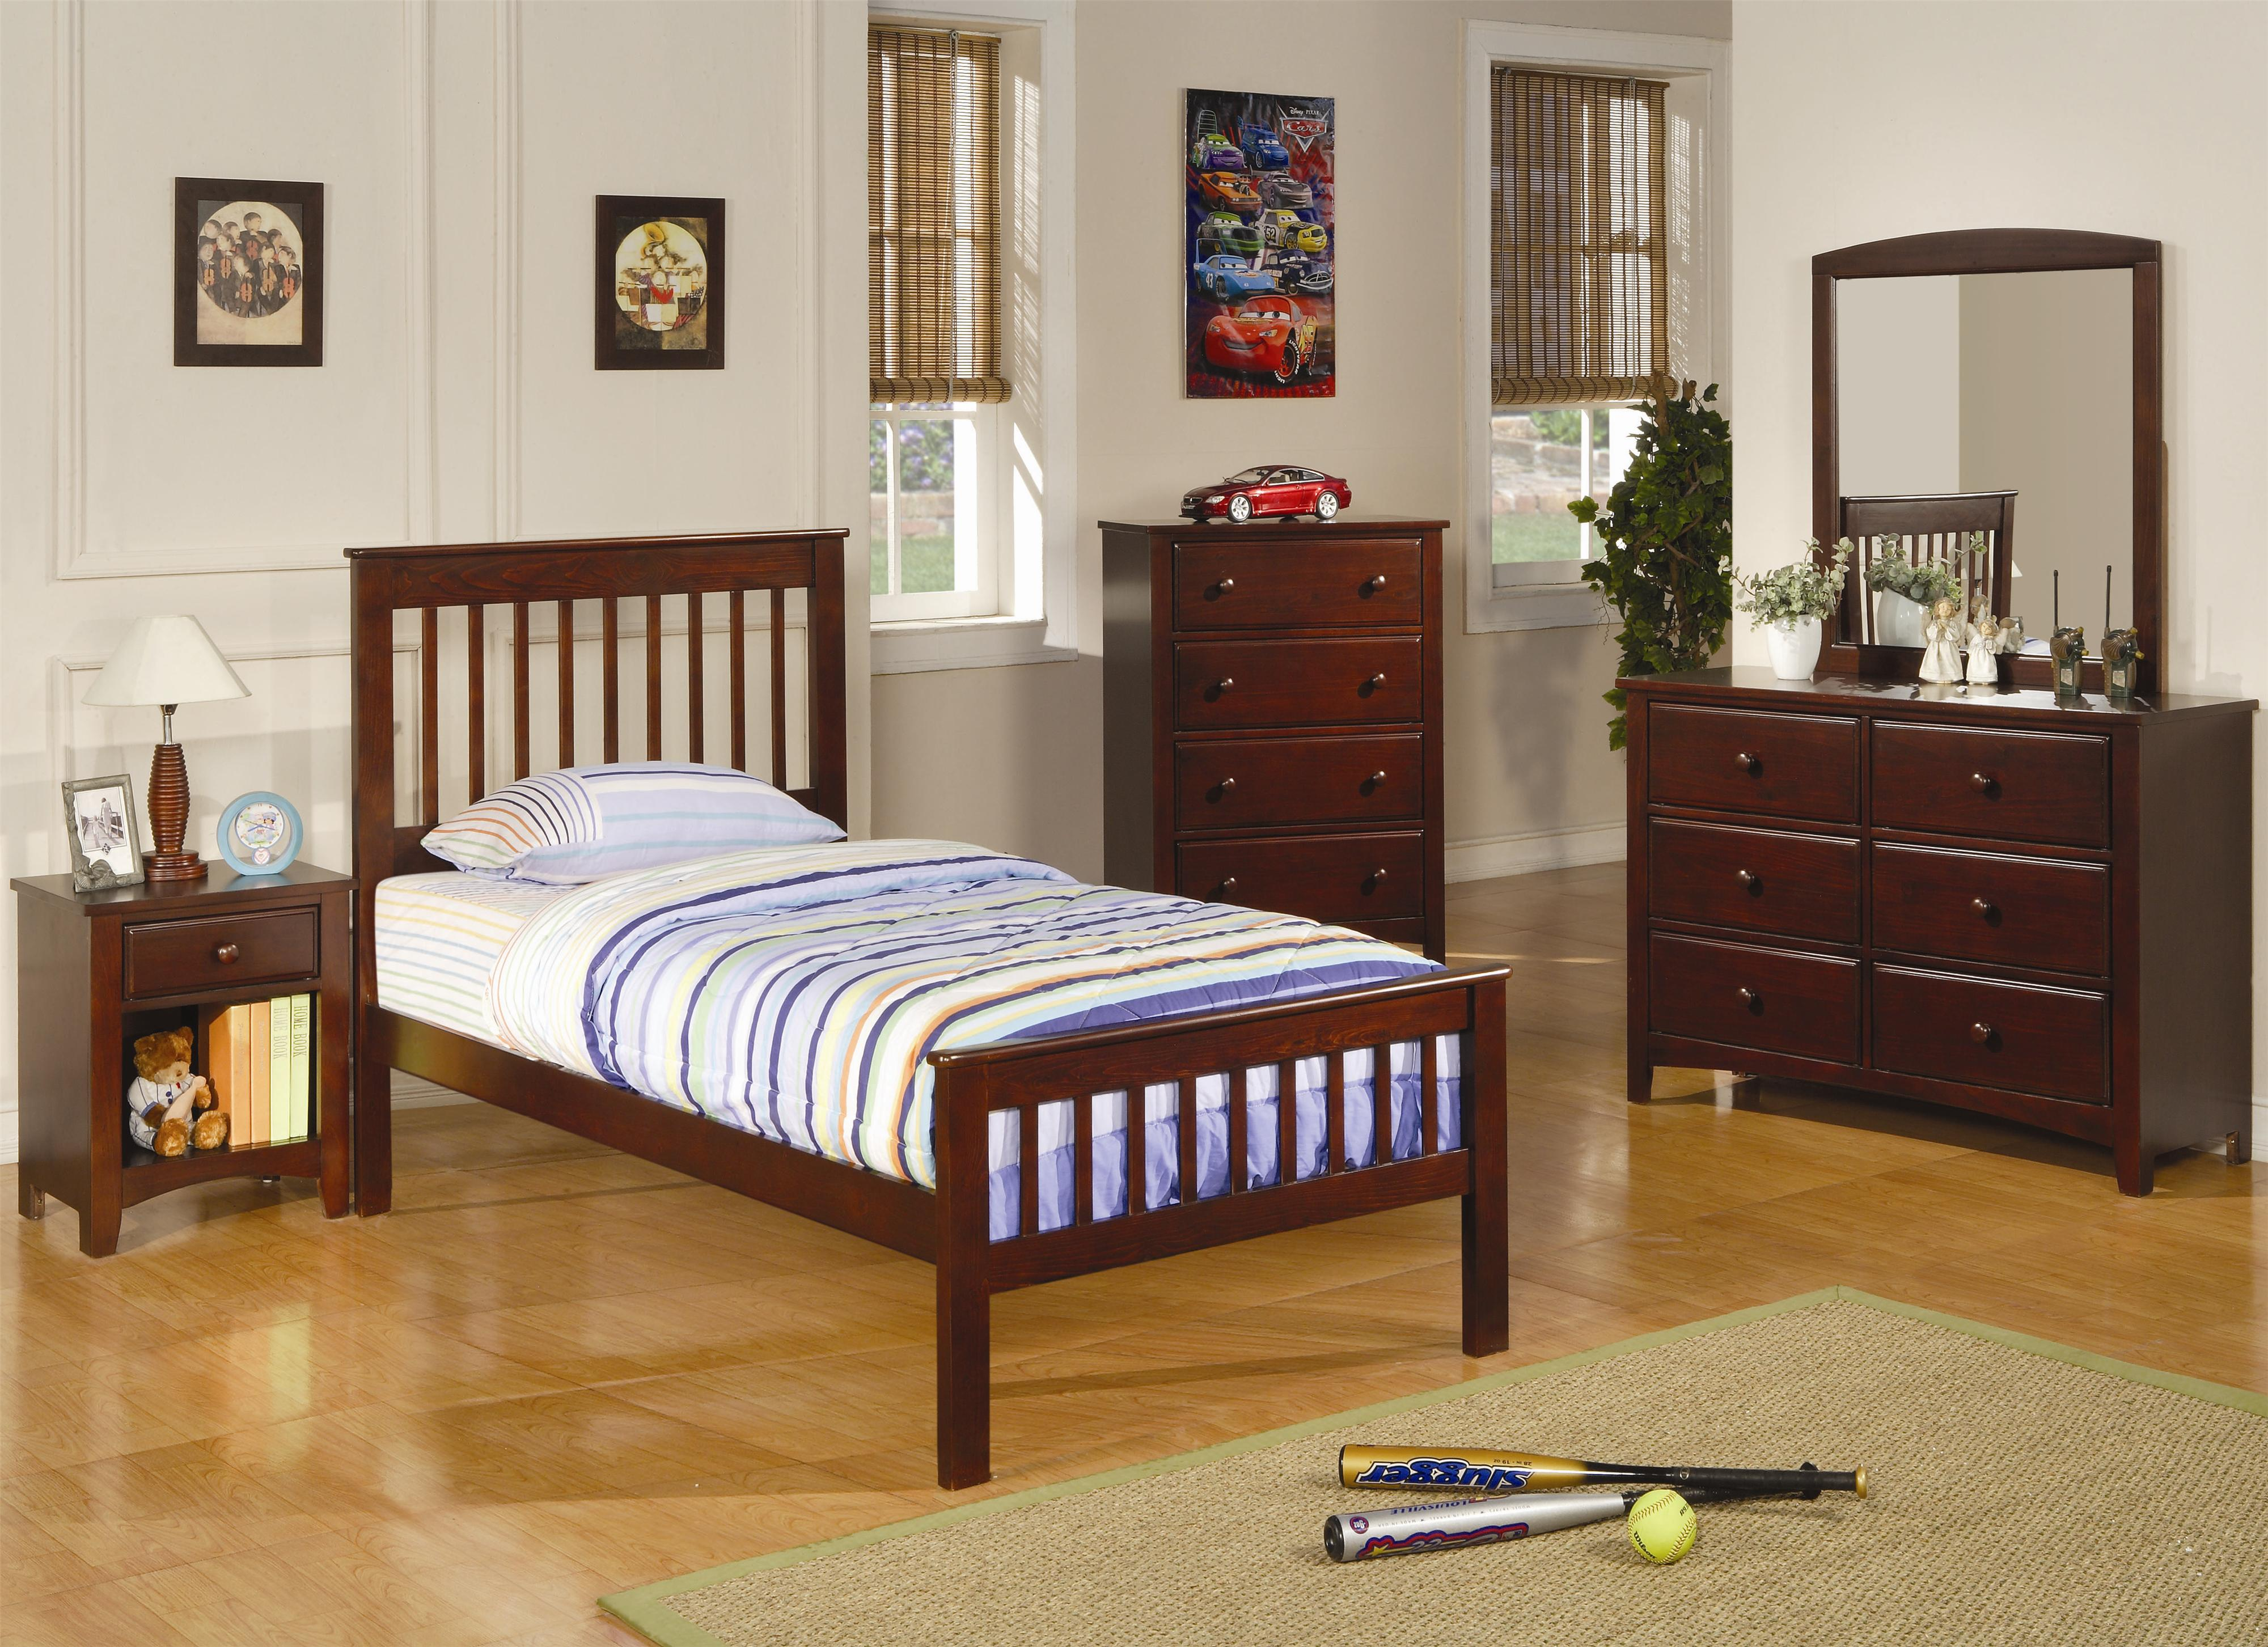 Coaster Parker Twin Bedroom Group - Item Number: 400290+460200 T Bedroom Group 2